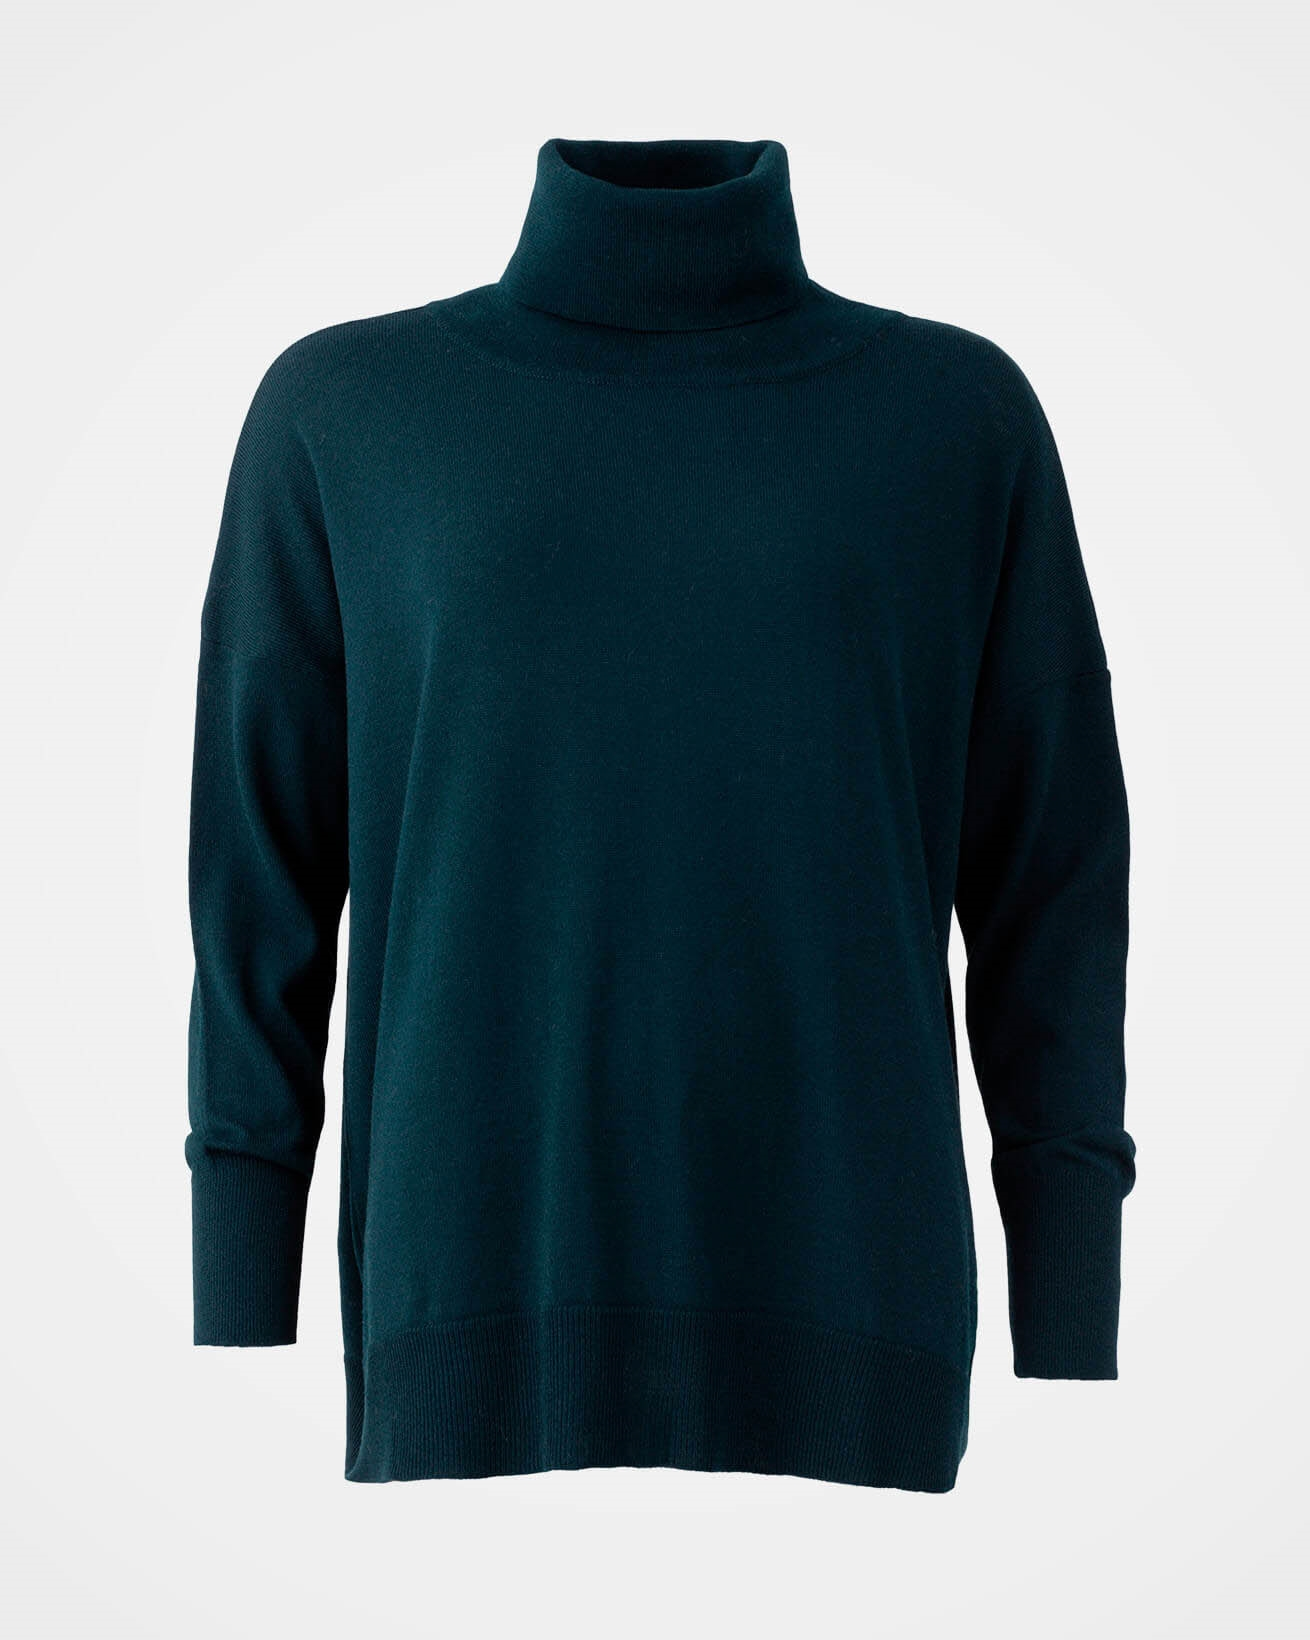 new_7401_slouchy-merino-rollneck_icelandic blue_front_web.jpg